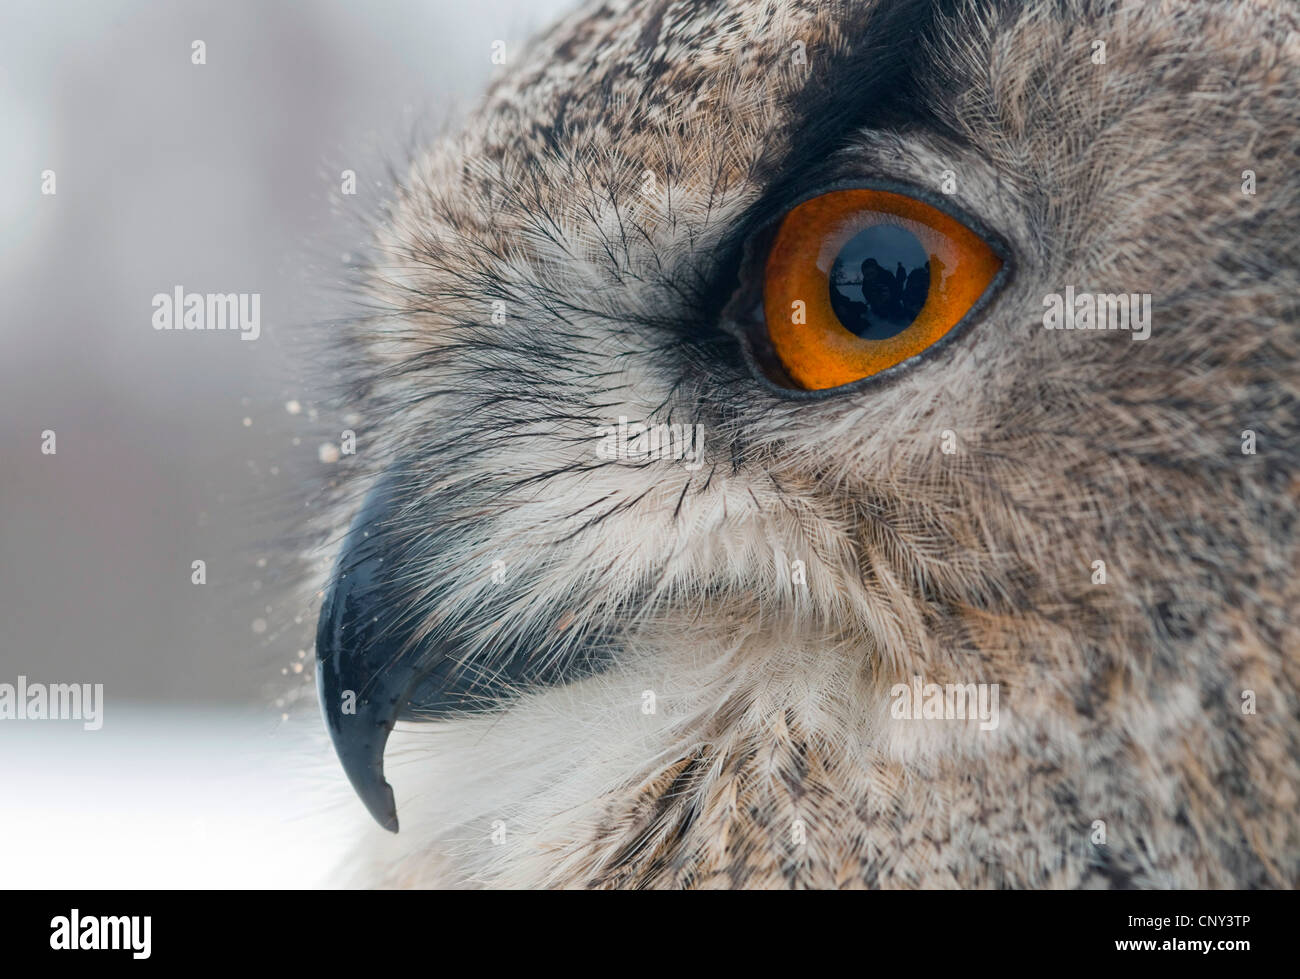 northern eagle owl (Bubo bubo), portrait, United Kingdom, Scotland - Stock Image